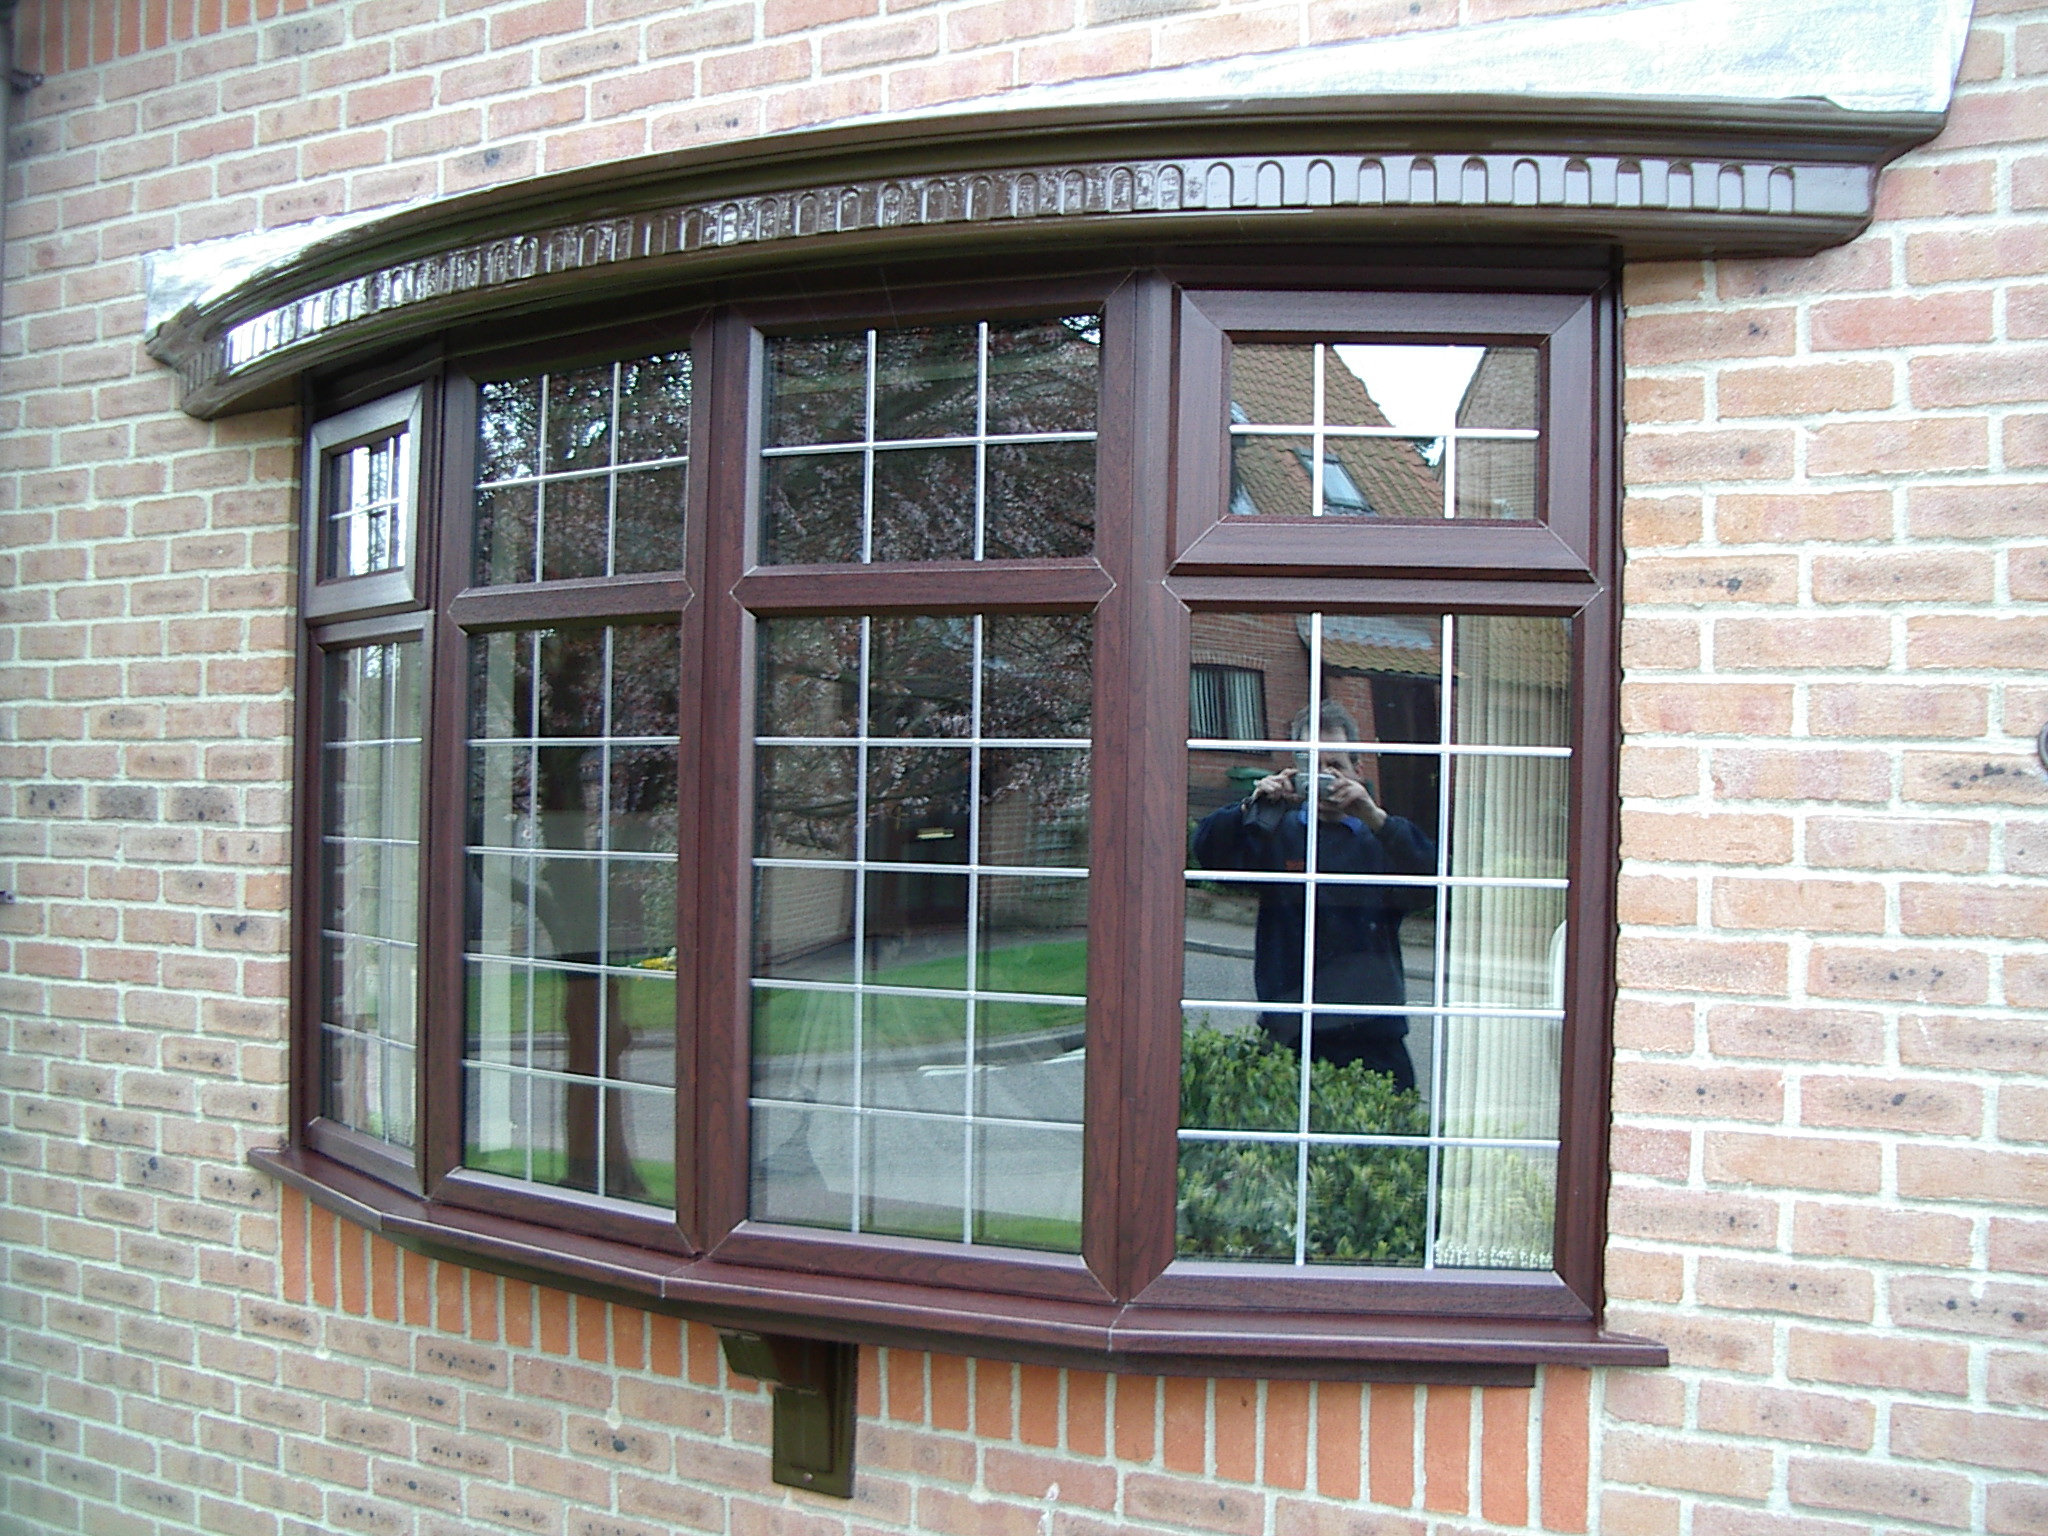 Gj kirk installations ltd east anglian norwich based for Latest window designs